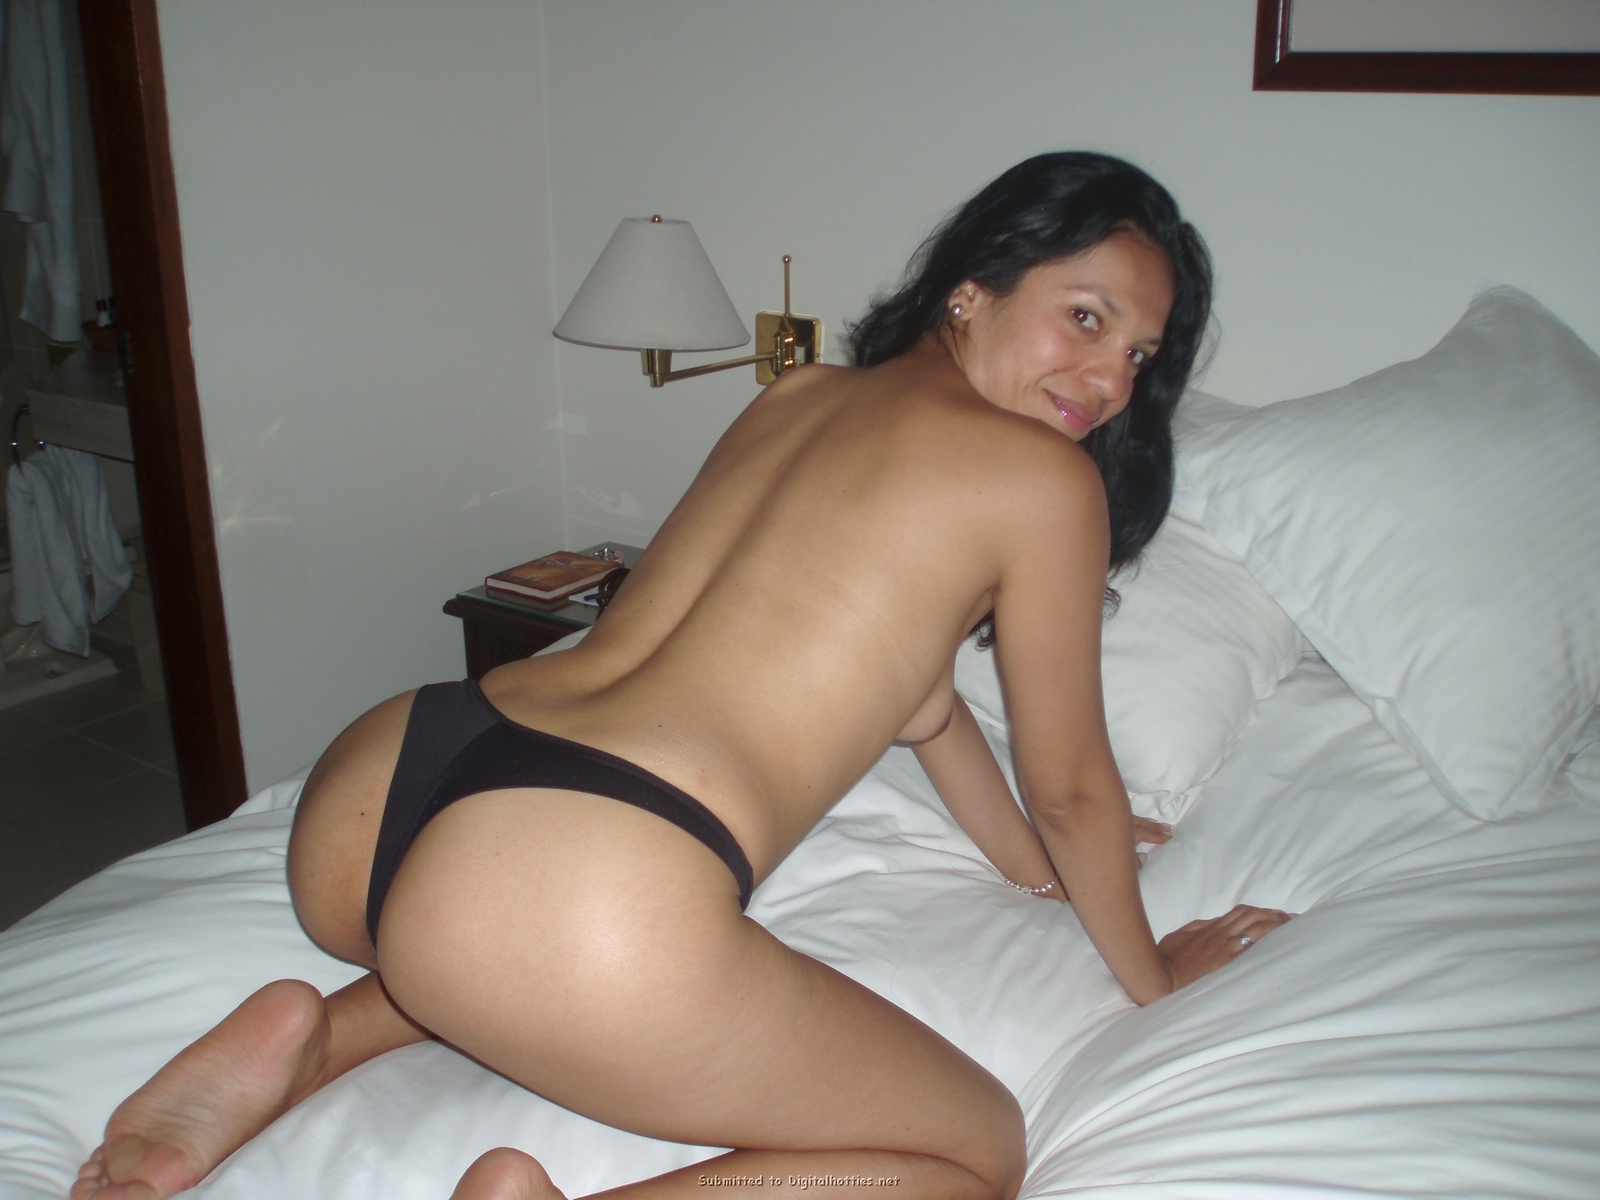 Amateurs girls losing virginity